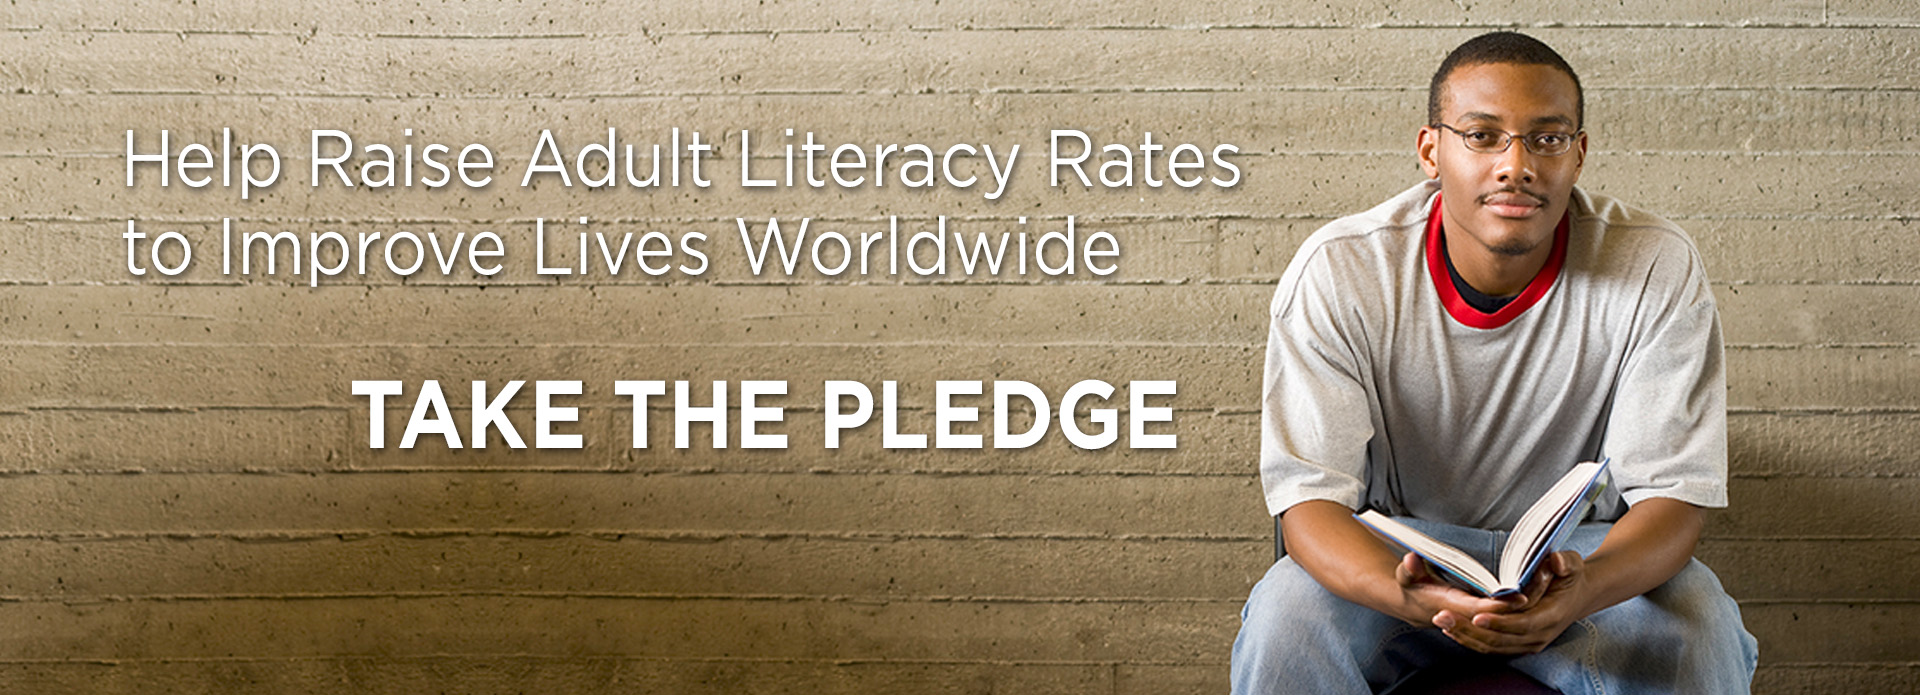 Help raise adult literacy rates and improve lives worldwide. Take the pledge.